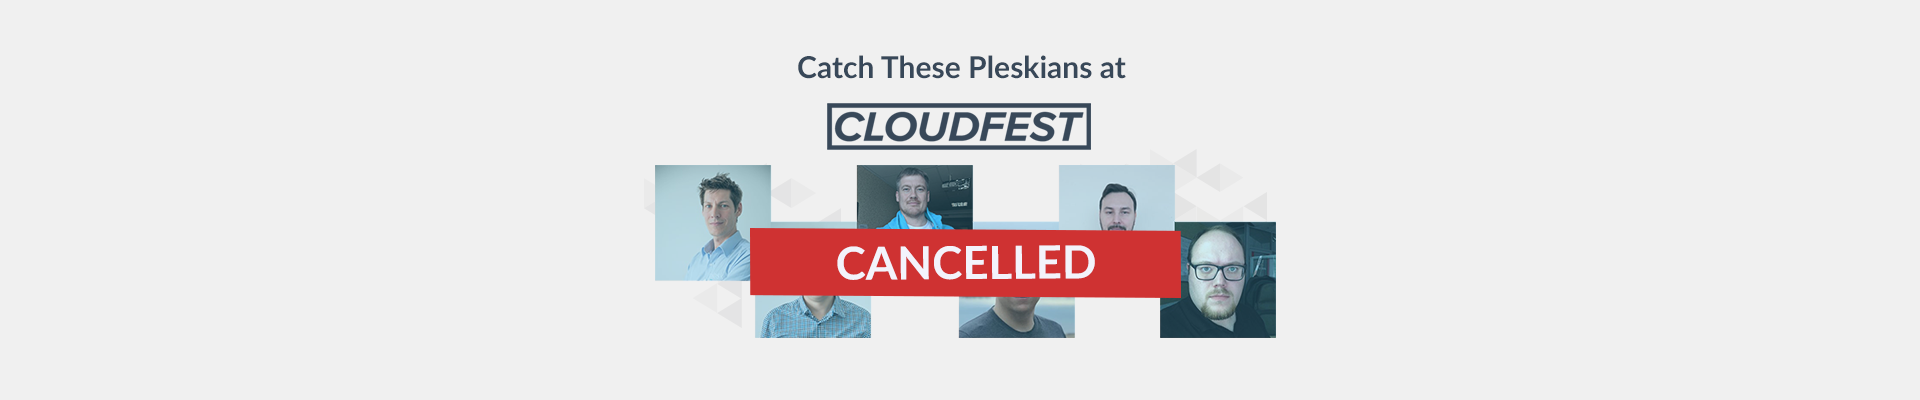 Cloudfest 2020 - Cancelled - Plesk Sponsor